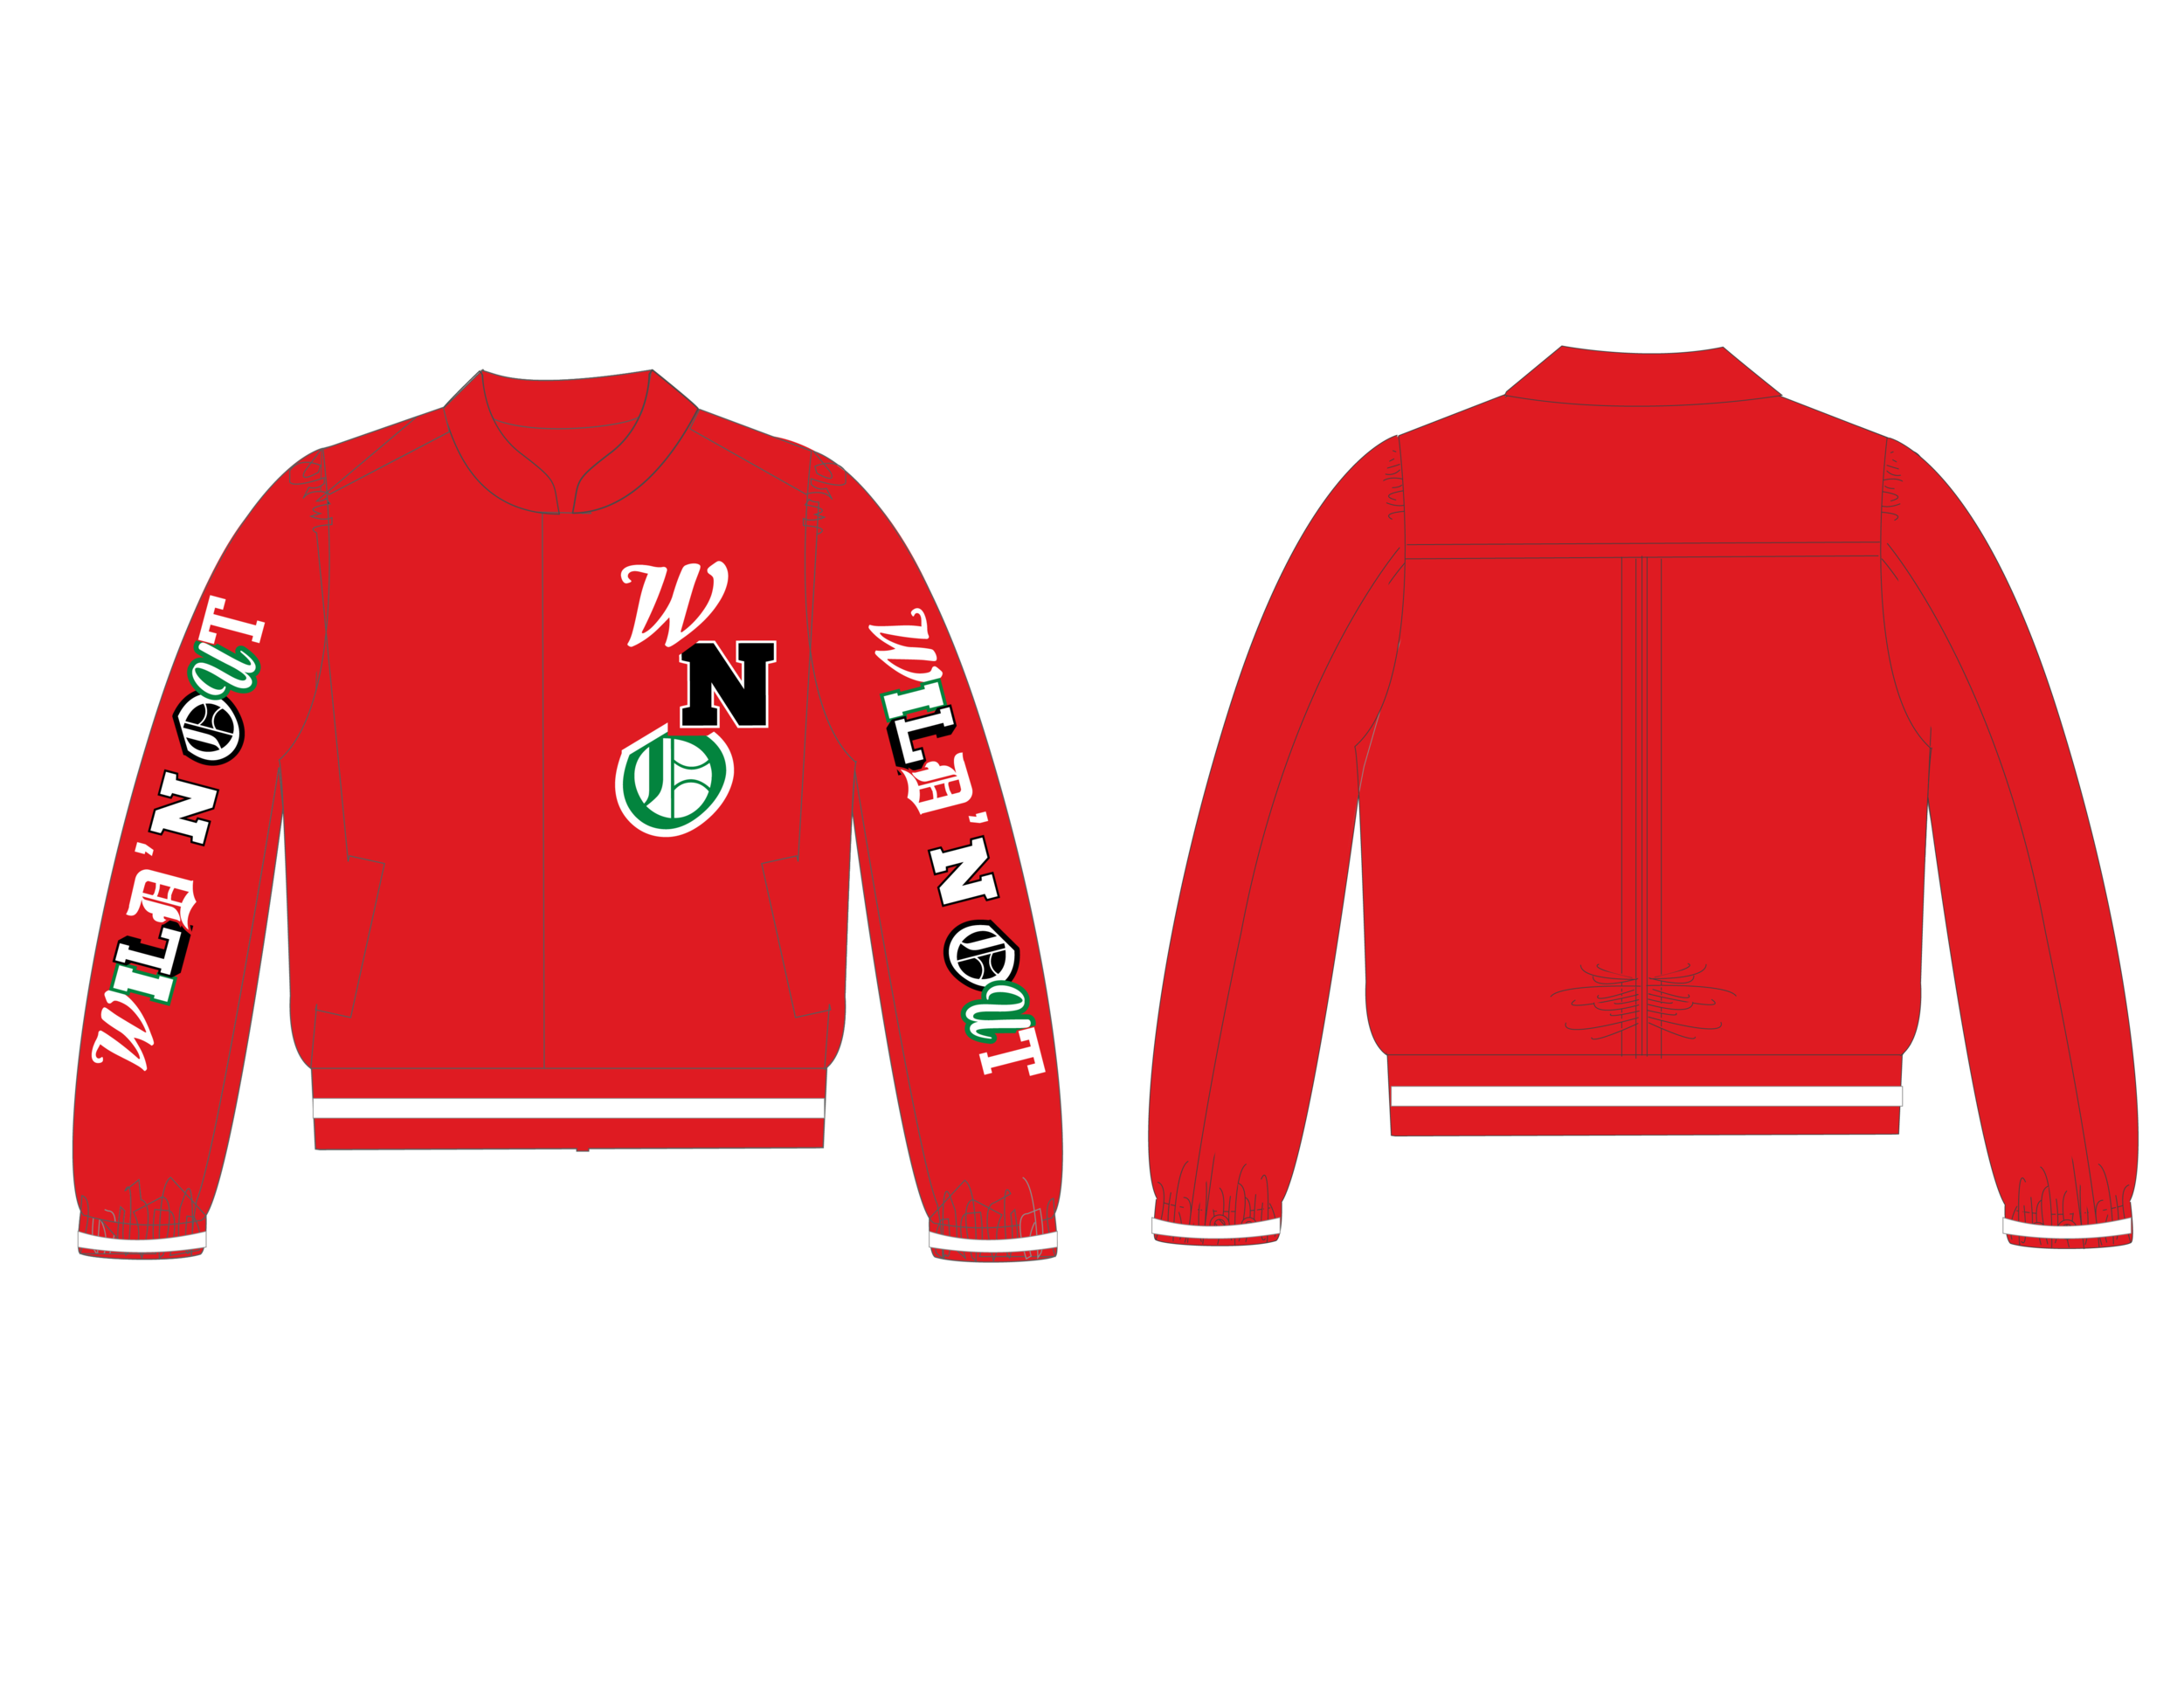 WildNOut_Jerseys [Recovered]-10.png